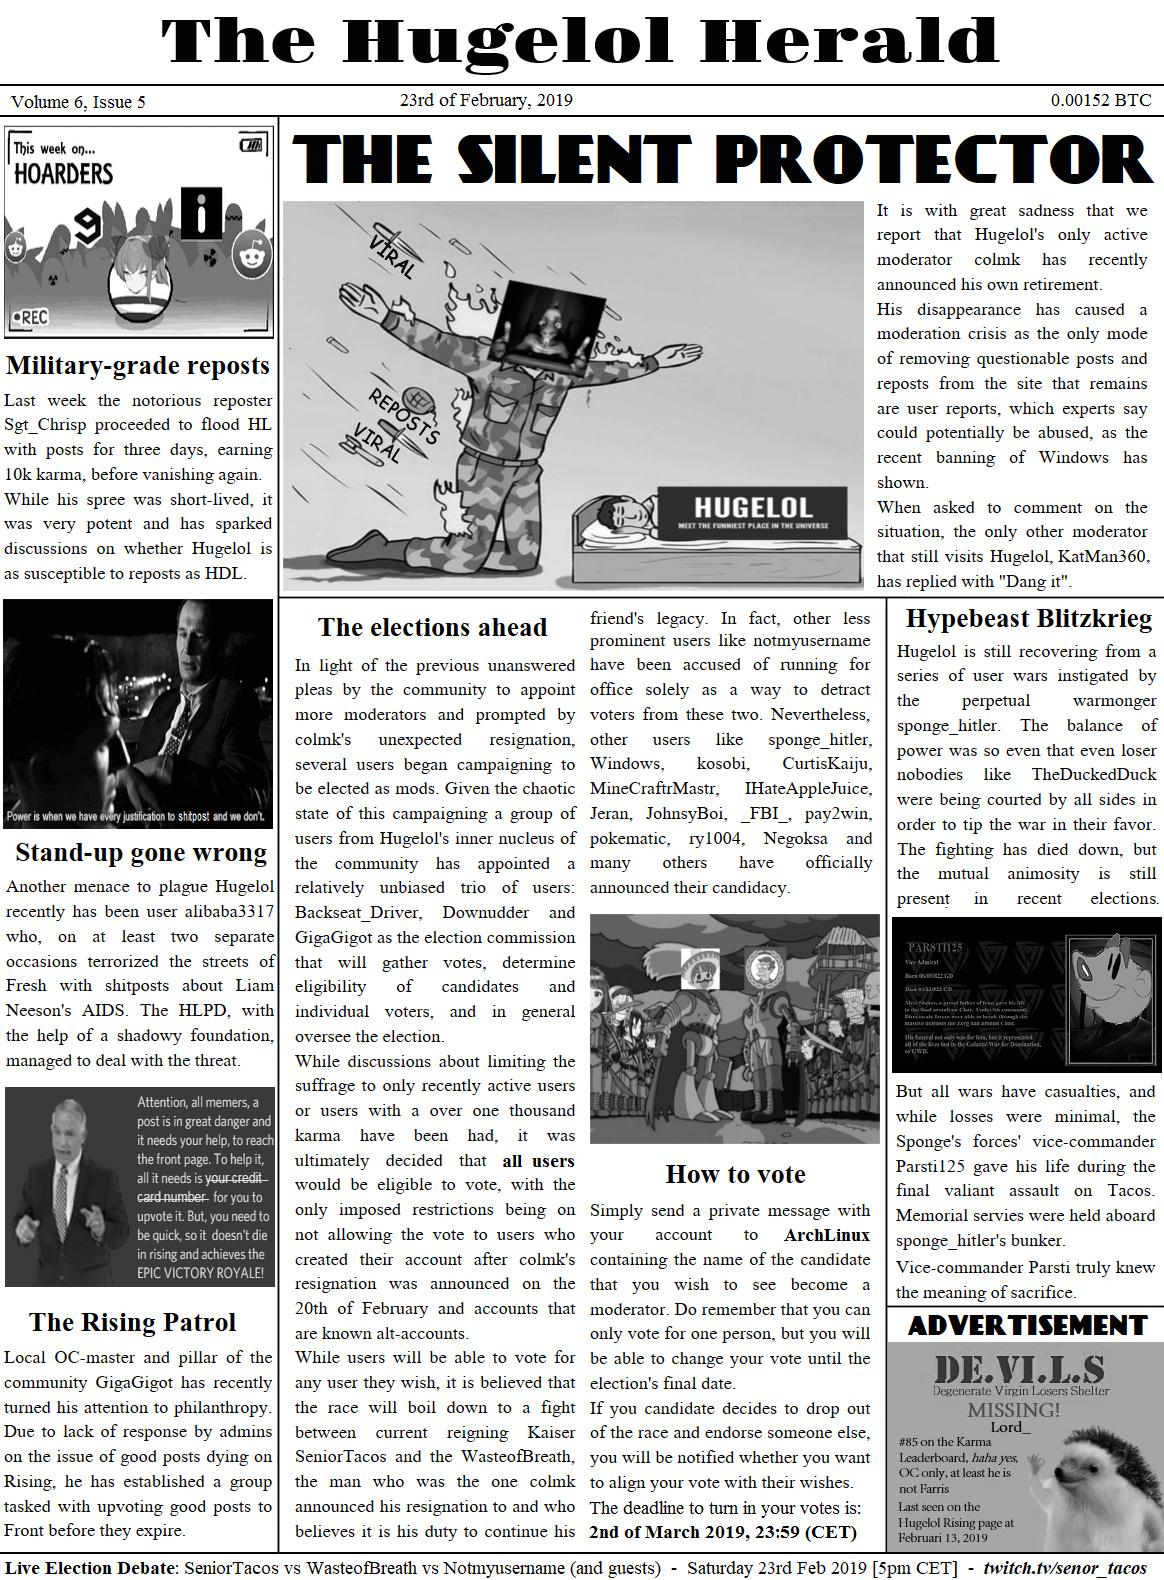 Hugelol Herald, the February election edition